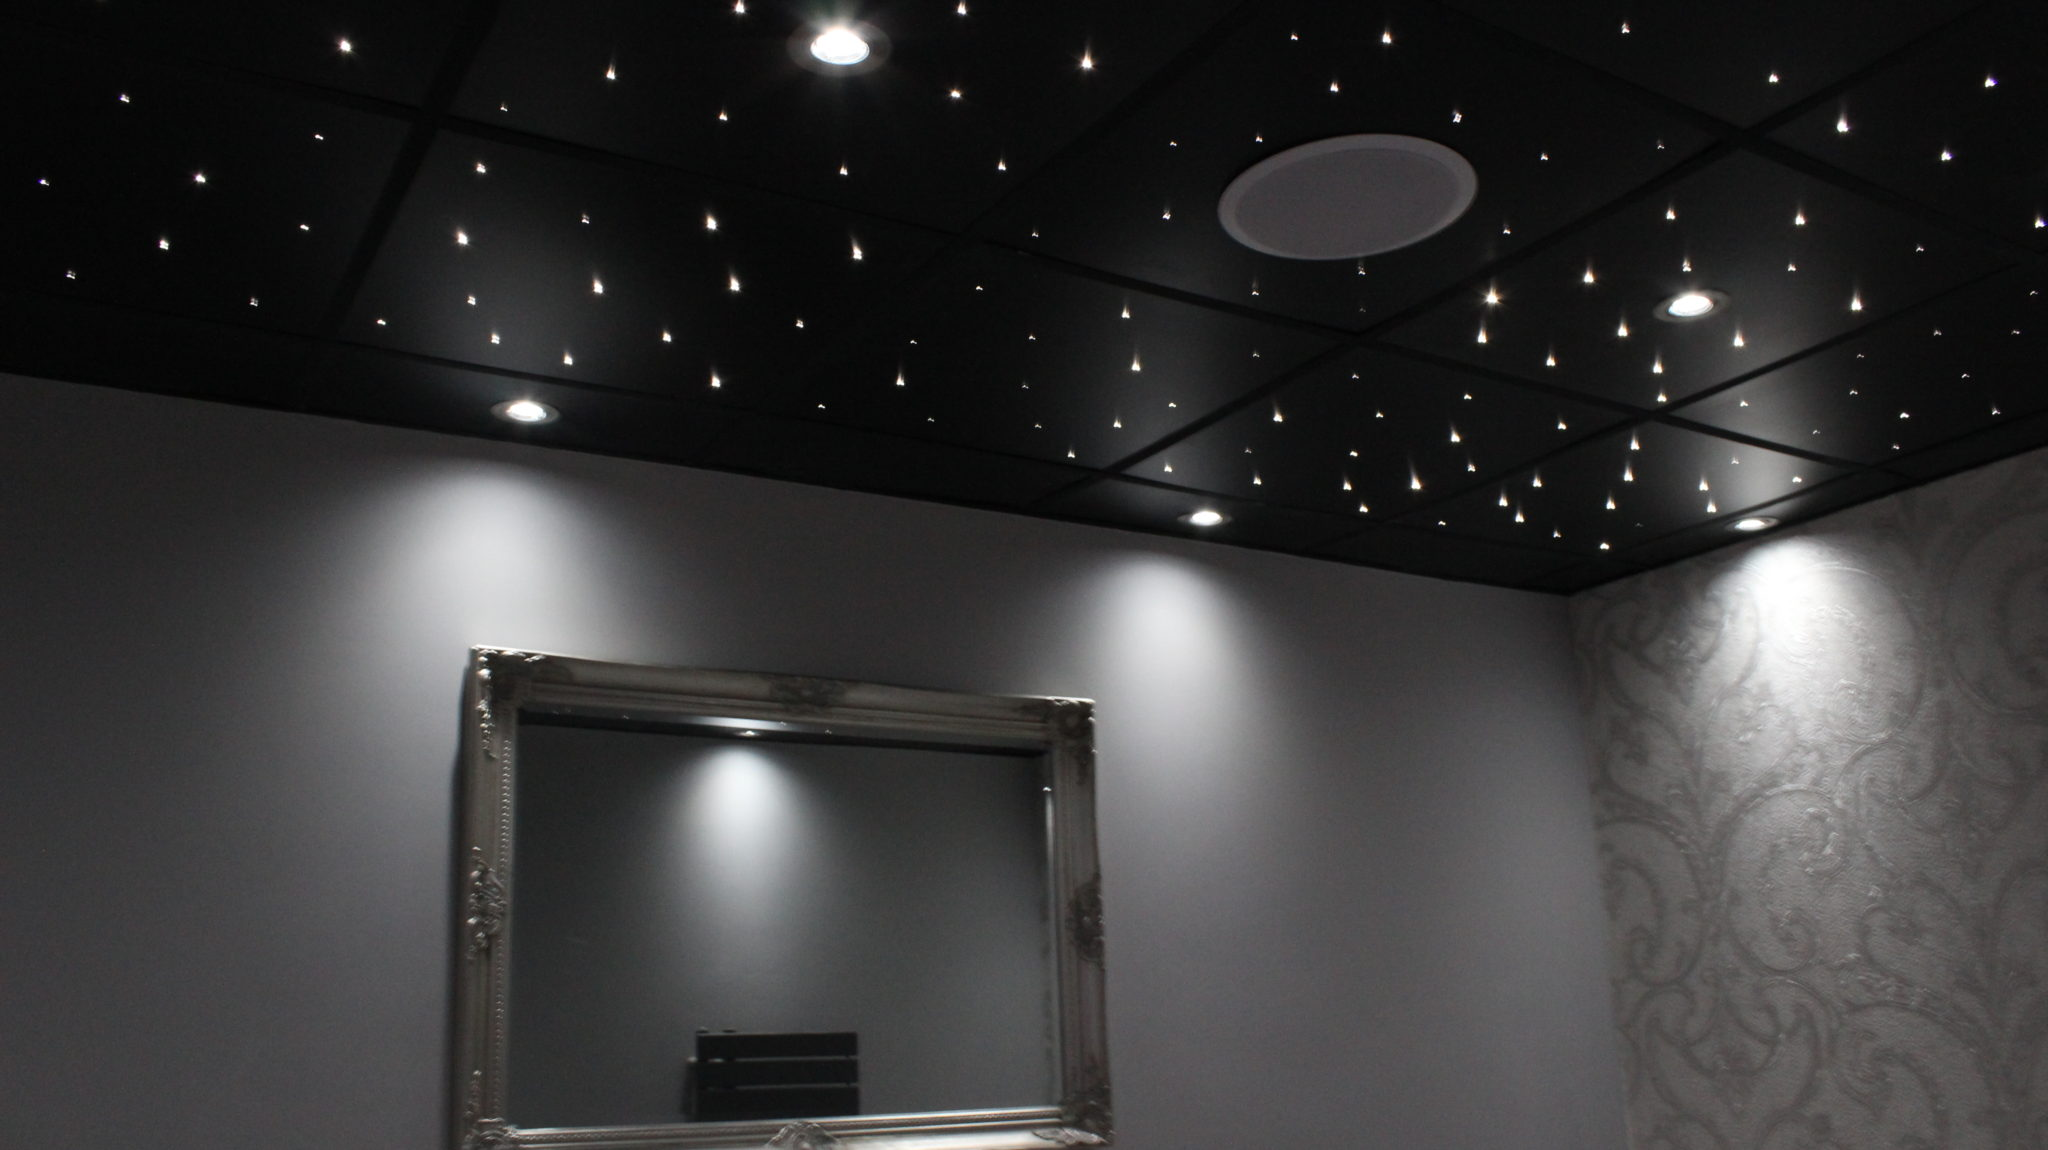 Black suspended ceiling tiles